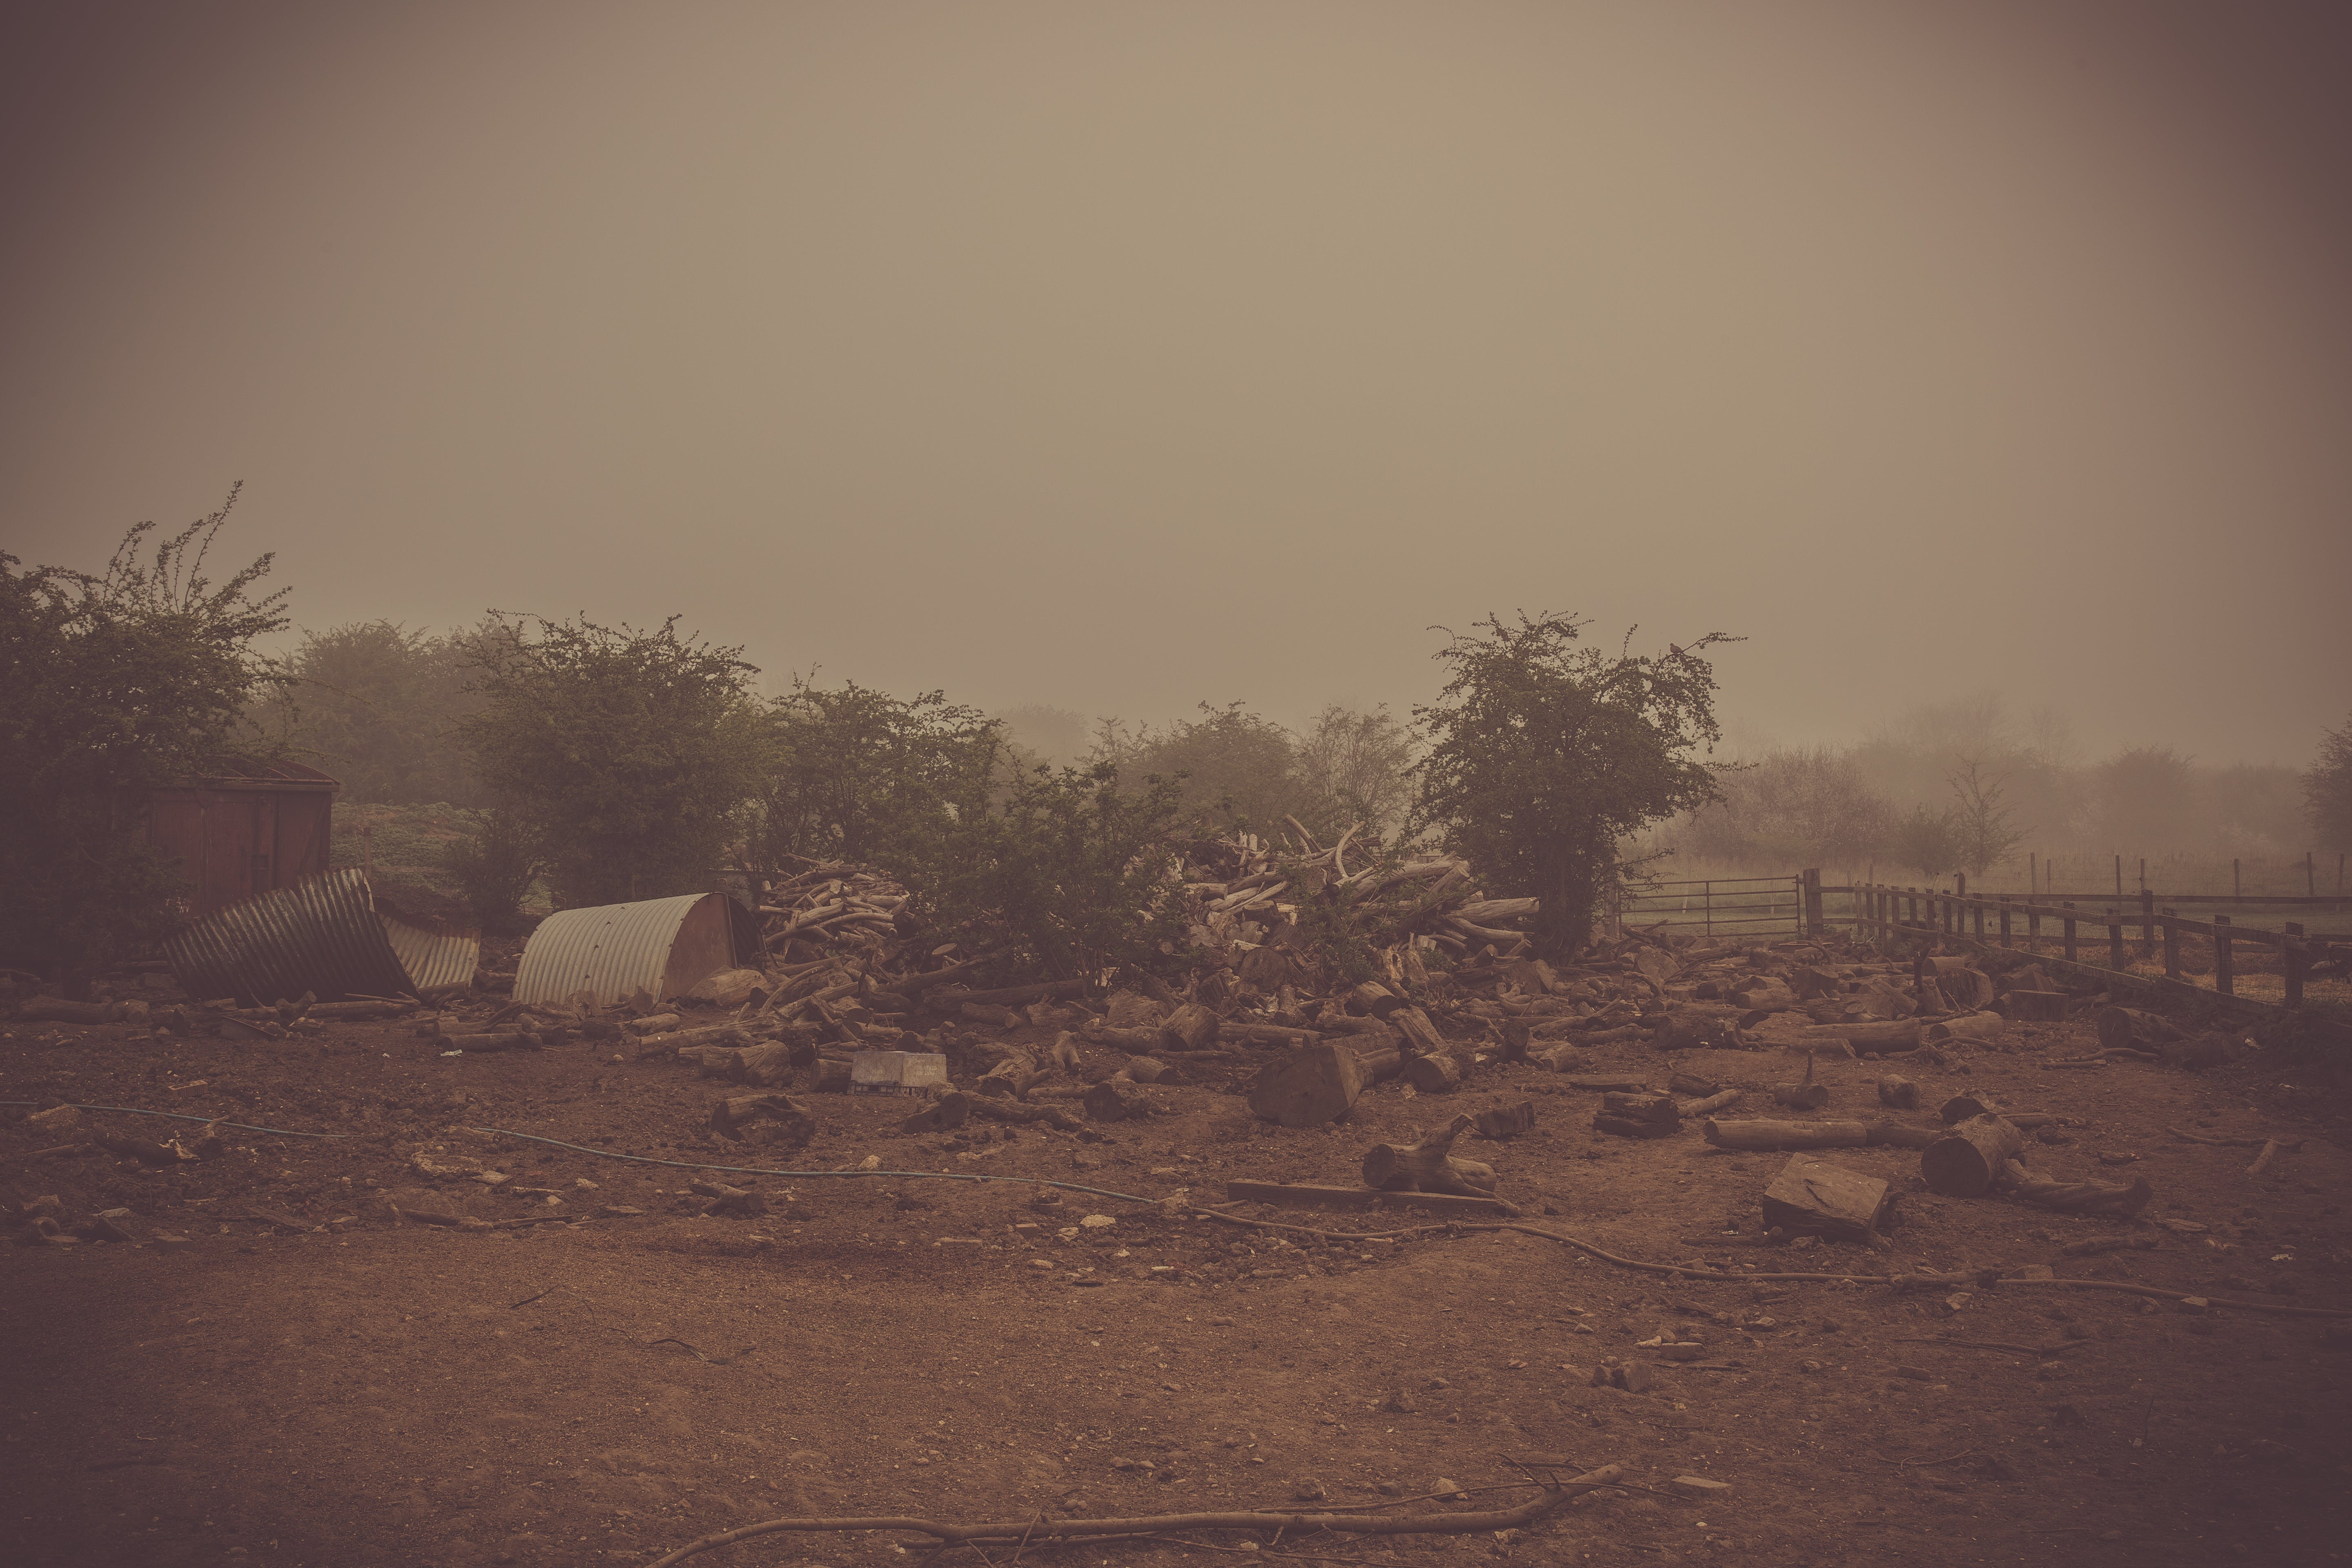 Free stock photo of derelict, desolation, earth, empty